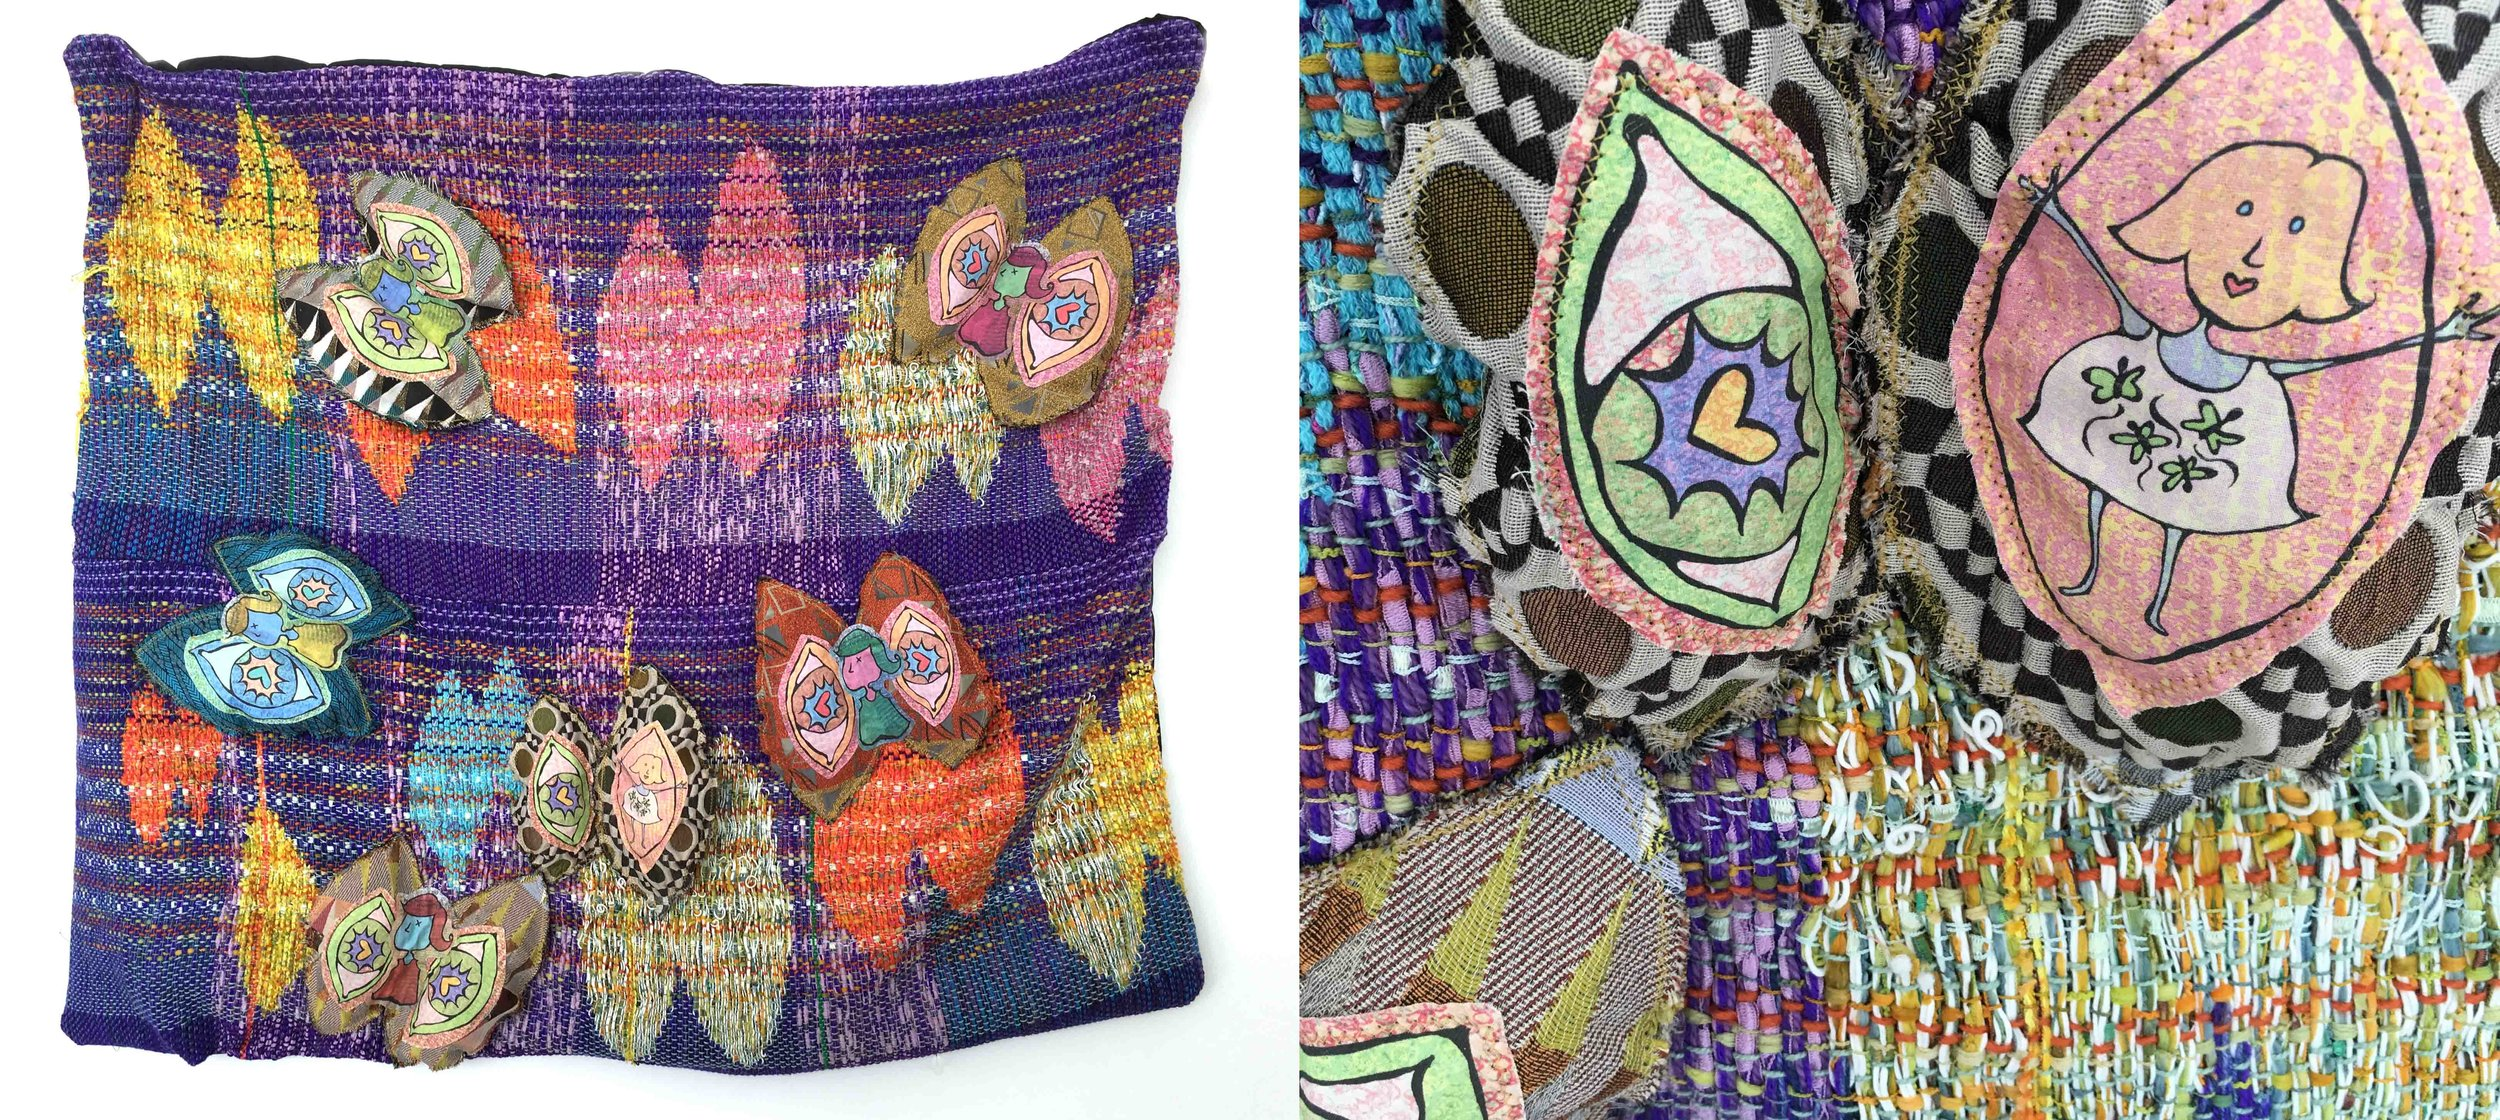 """Butterflies in My Stomach  h: 32"""" x w: 35"""" hand-woven and machine-made fabric, embroidery, inkjet prints, fleece 2017"""